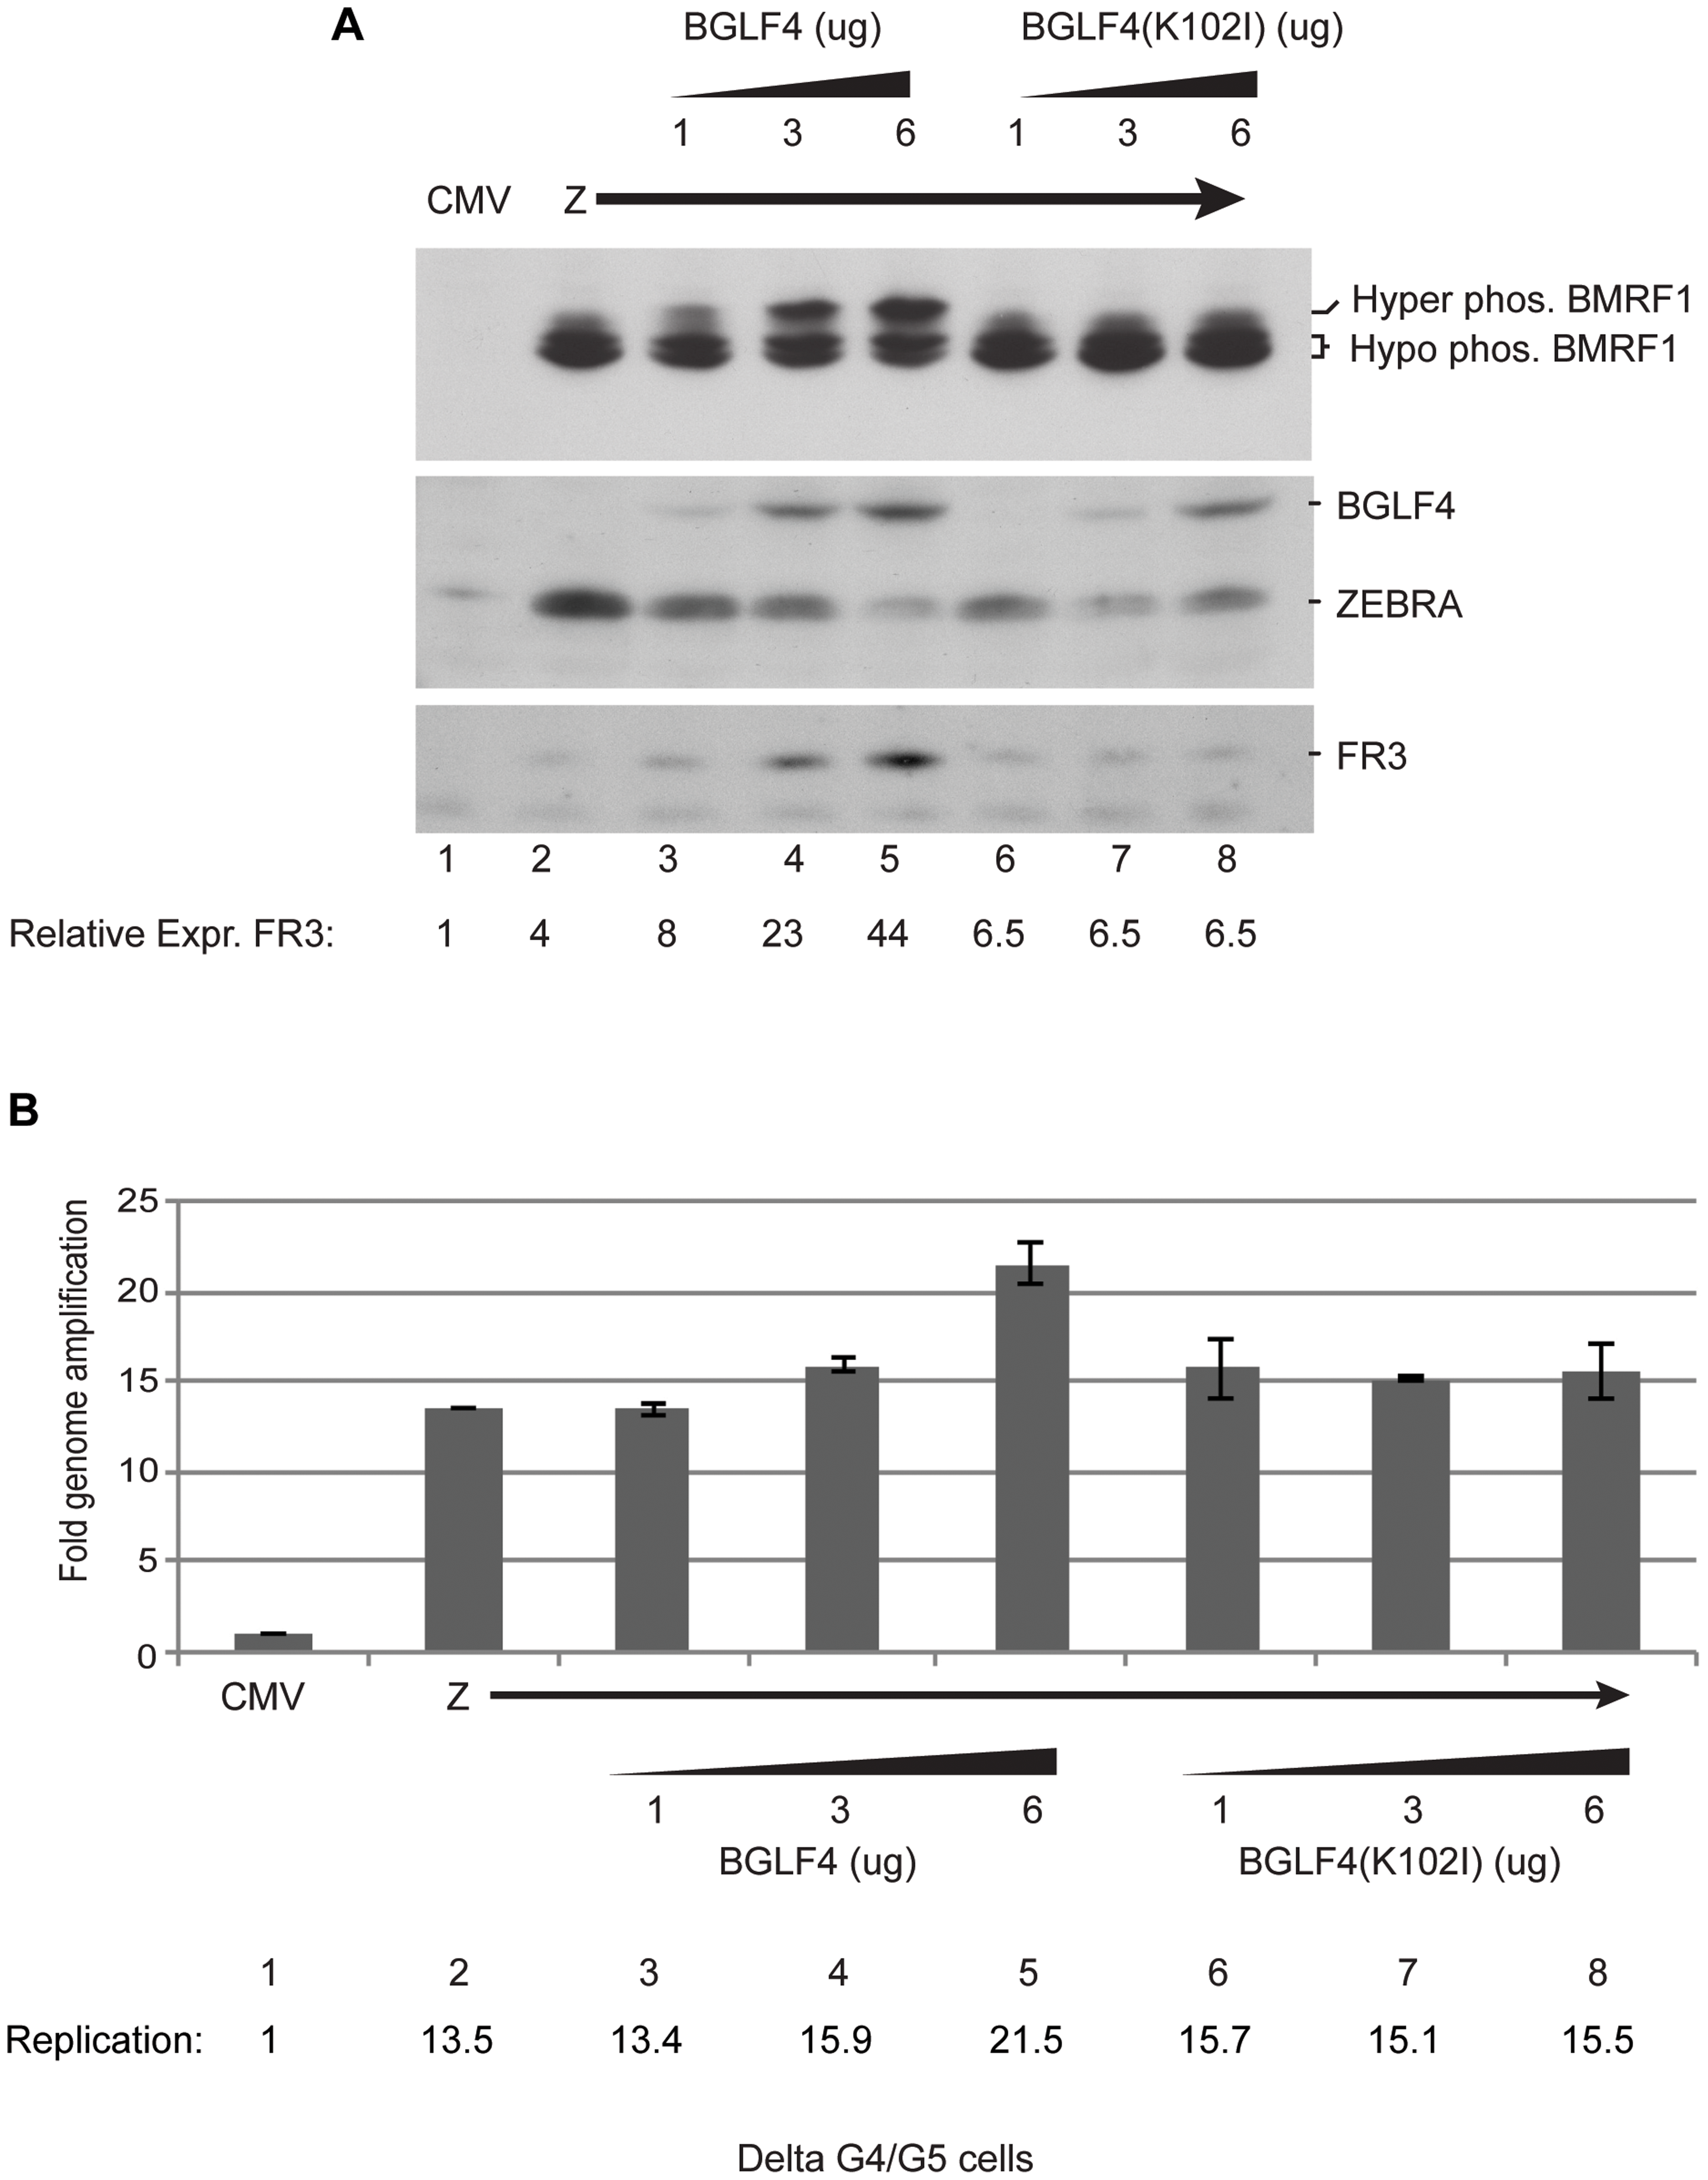 Increasing concentrations of wild-type BGLF4, but not the kinase dead mutant, enhances late gene expression.